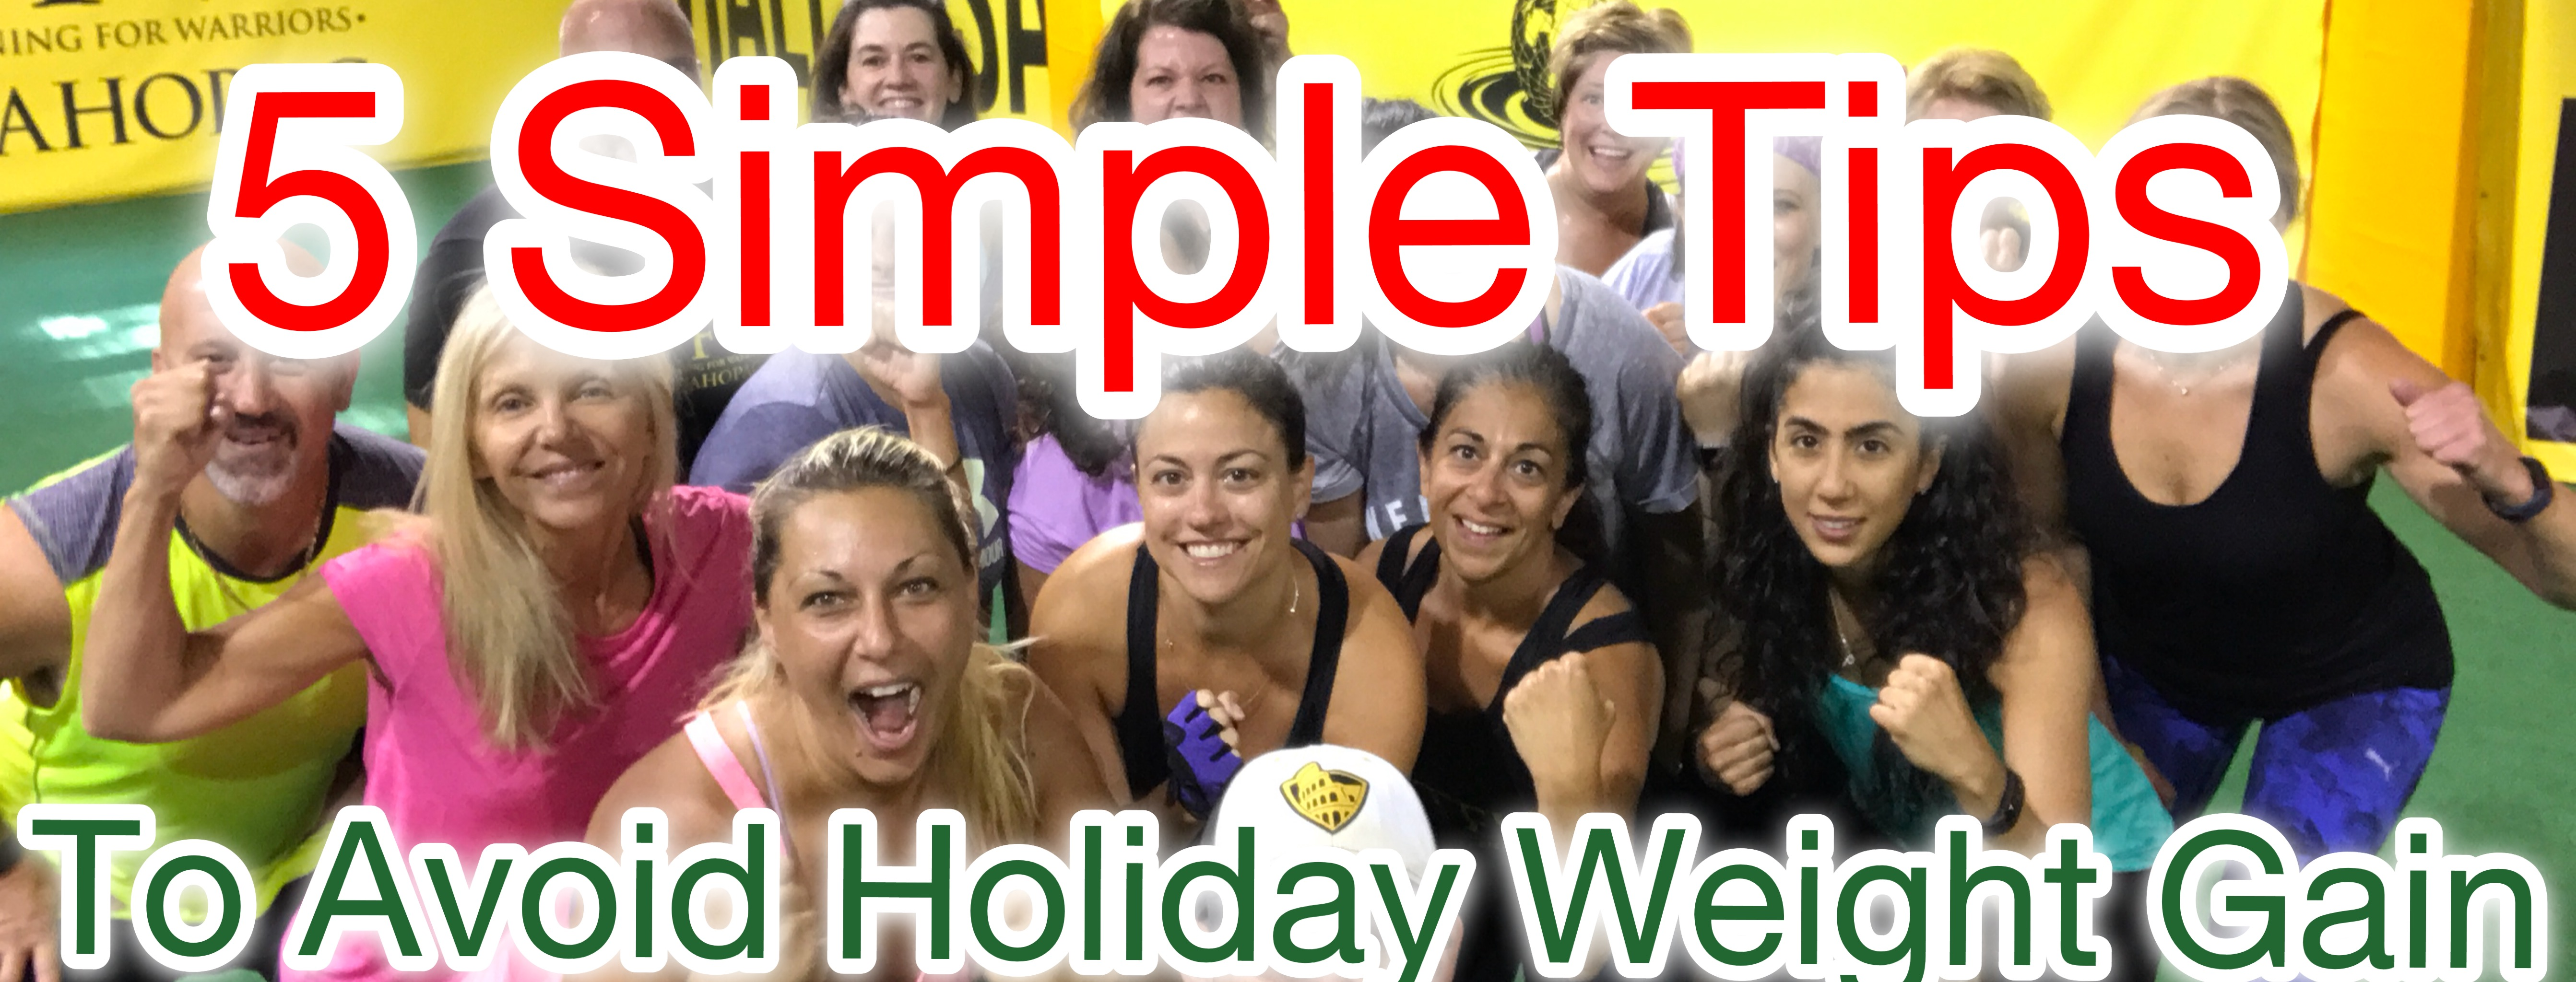 5 Simple Tips To Avoid Holiday Weight Gain